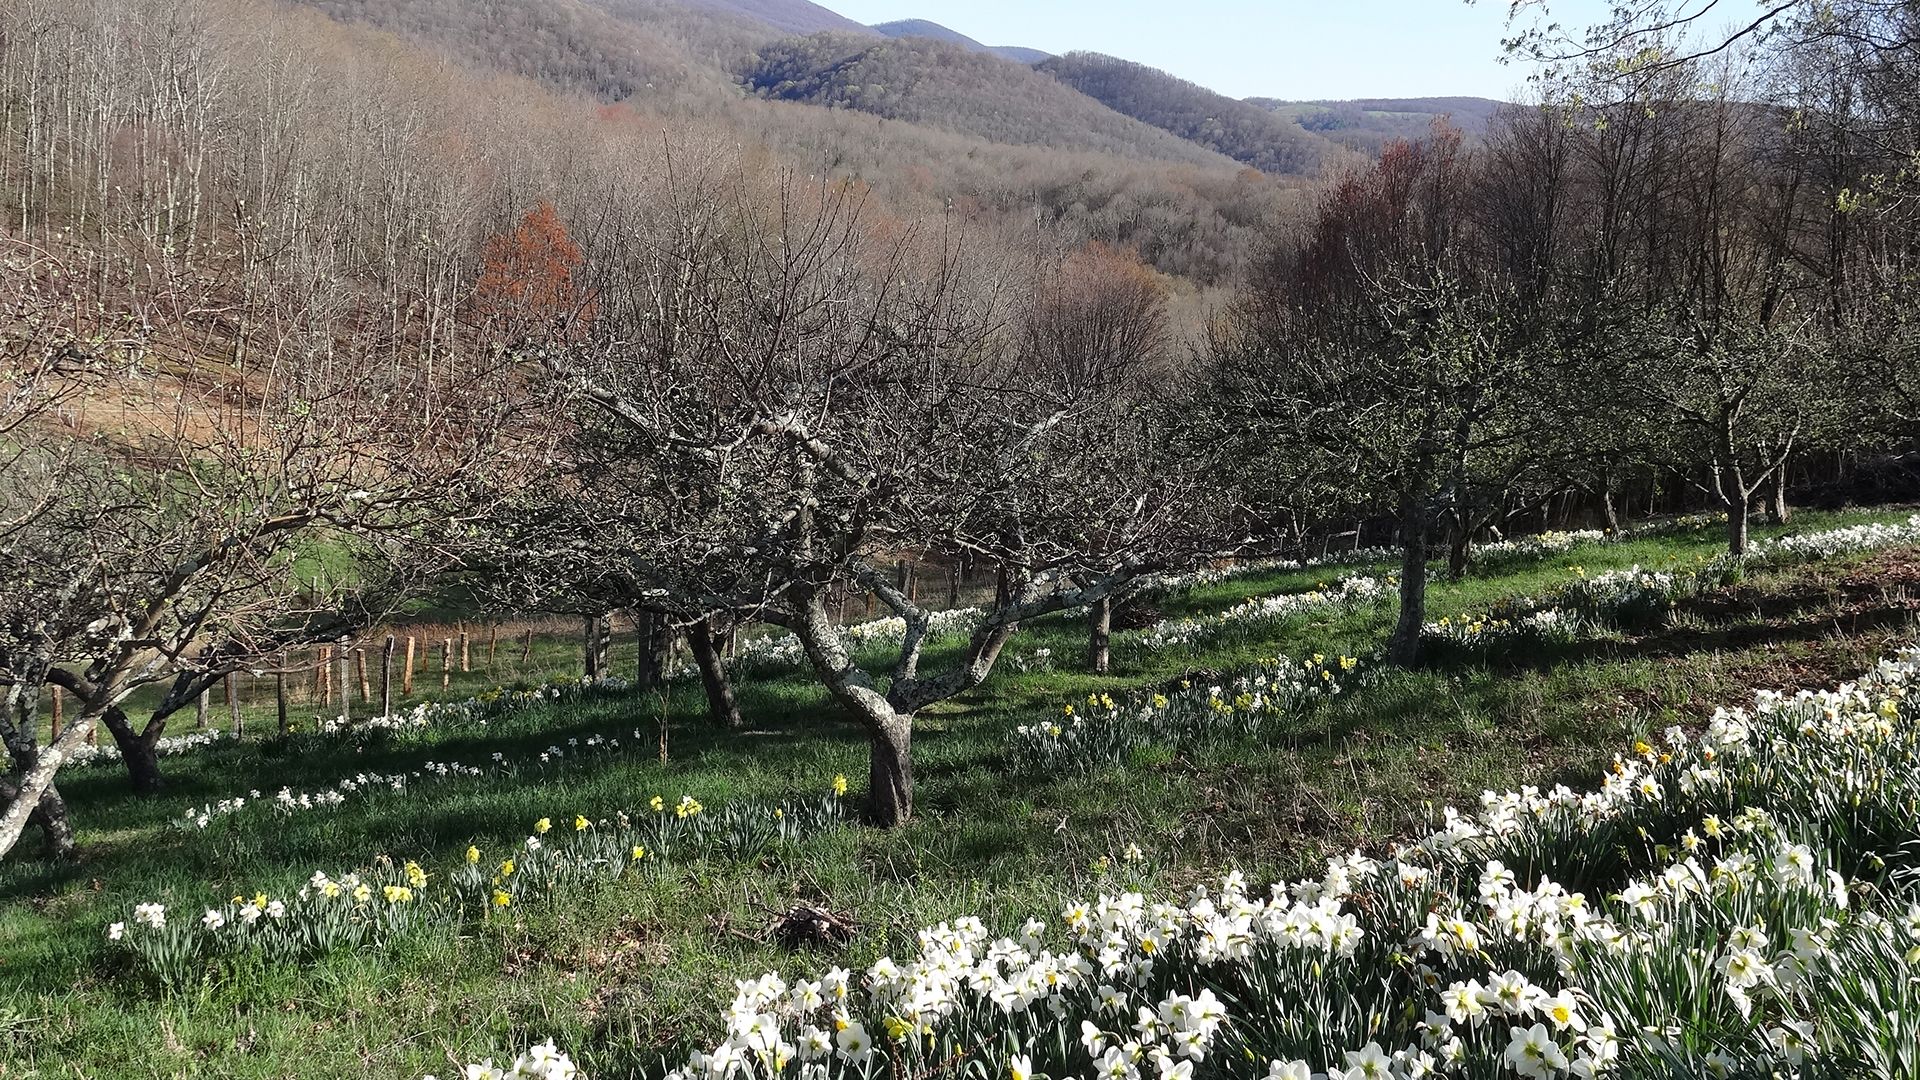 Orchard in Spring - Full Width Image